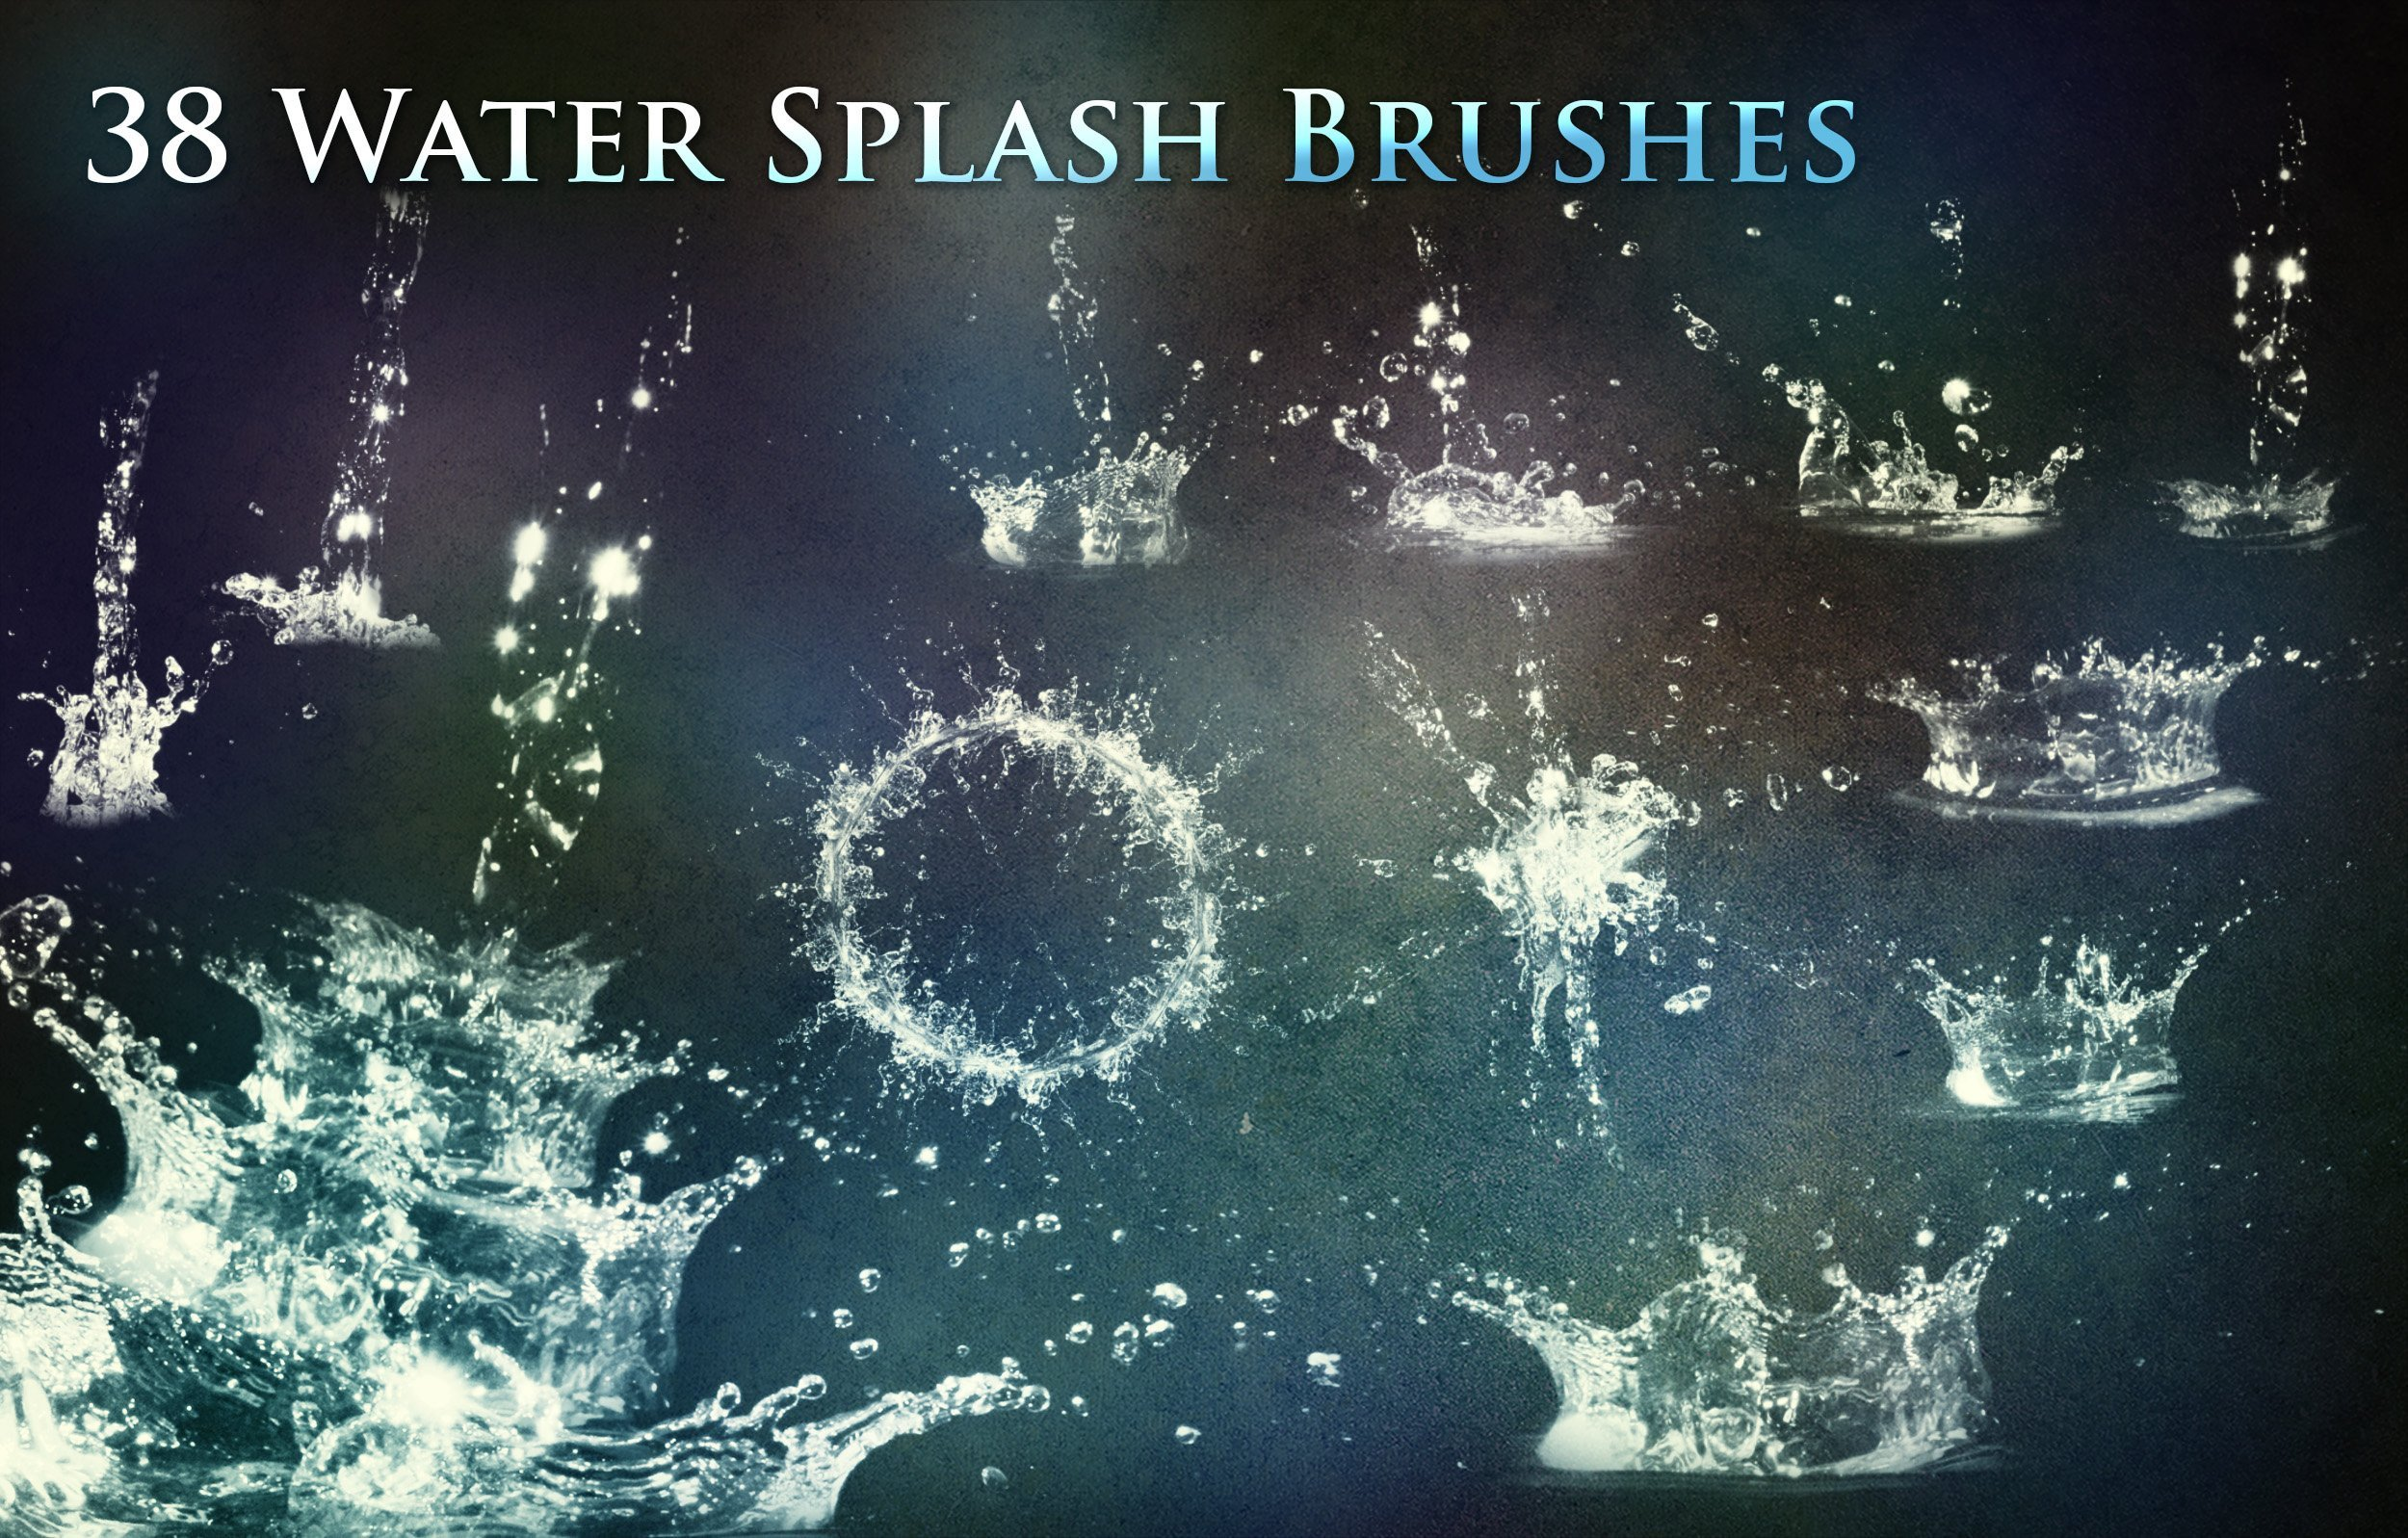 Water Splash Brush Photoshop 38 Water Splash Brushes Shop Add S Creative Market